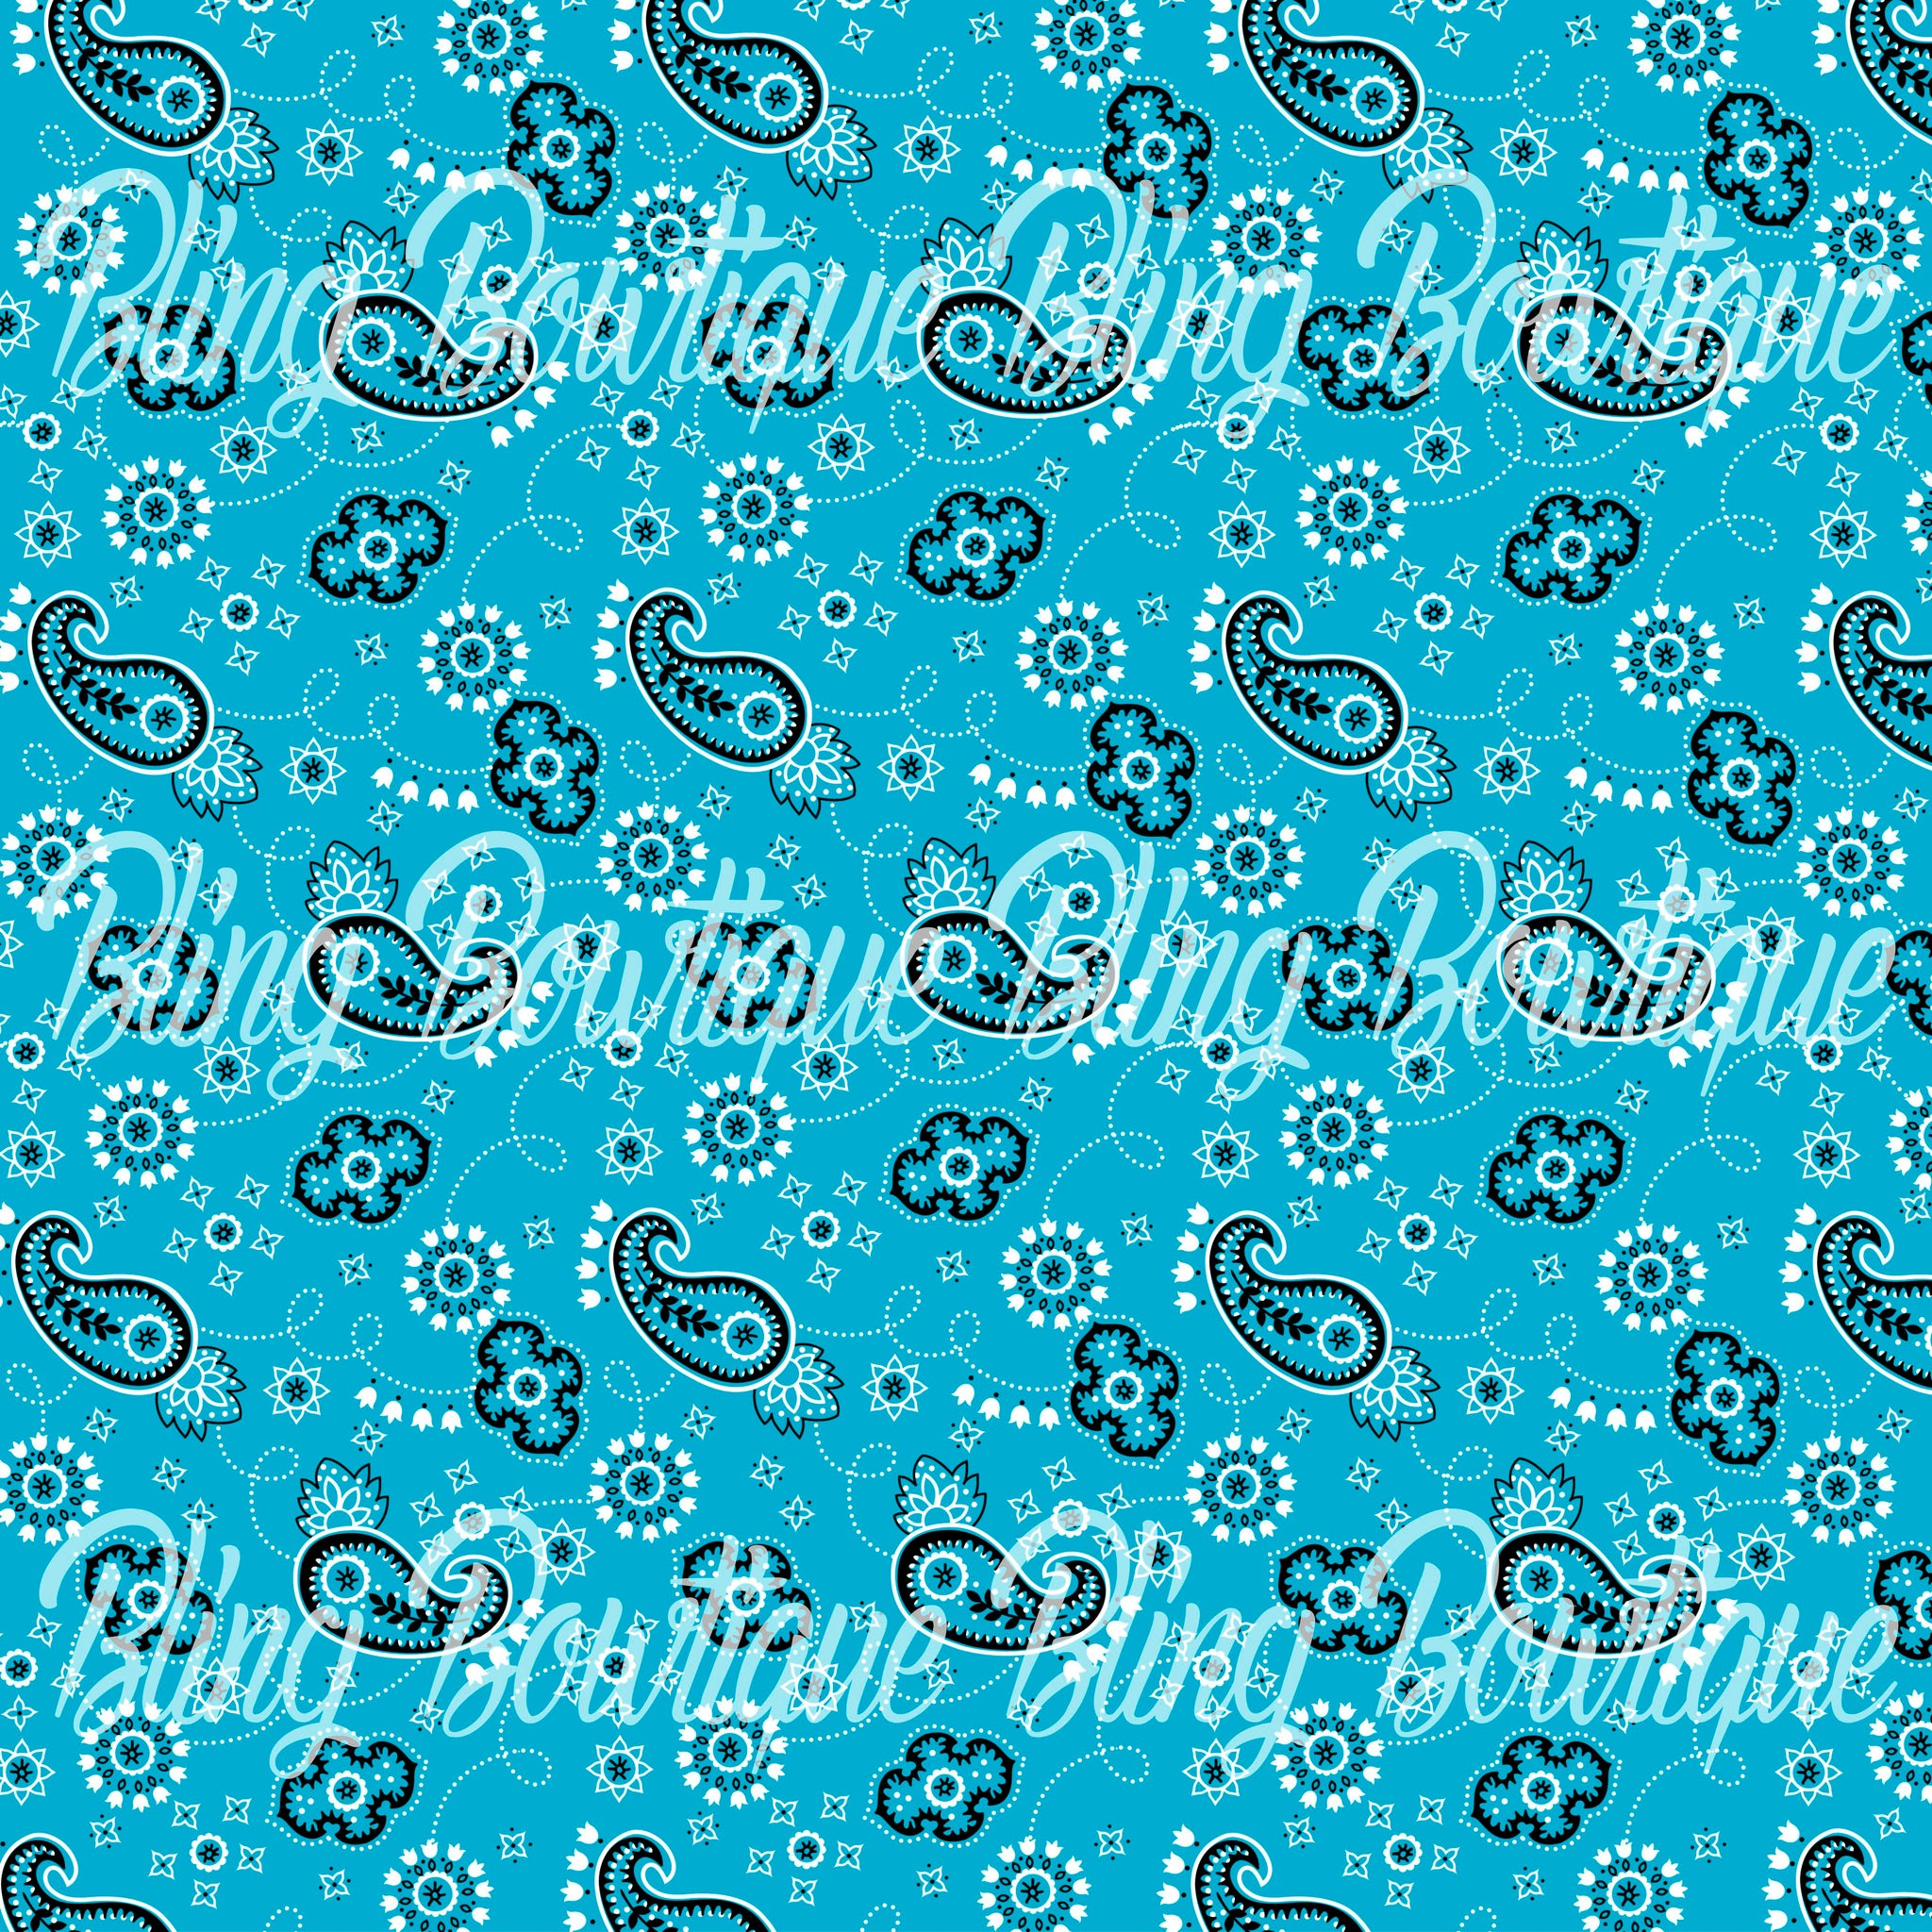 Bandana Blue Glitter Canvas, Regular Canvas, Faux Leather For Bows